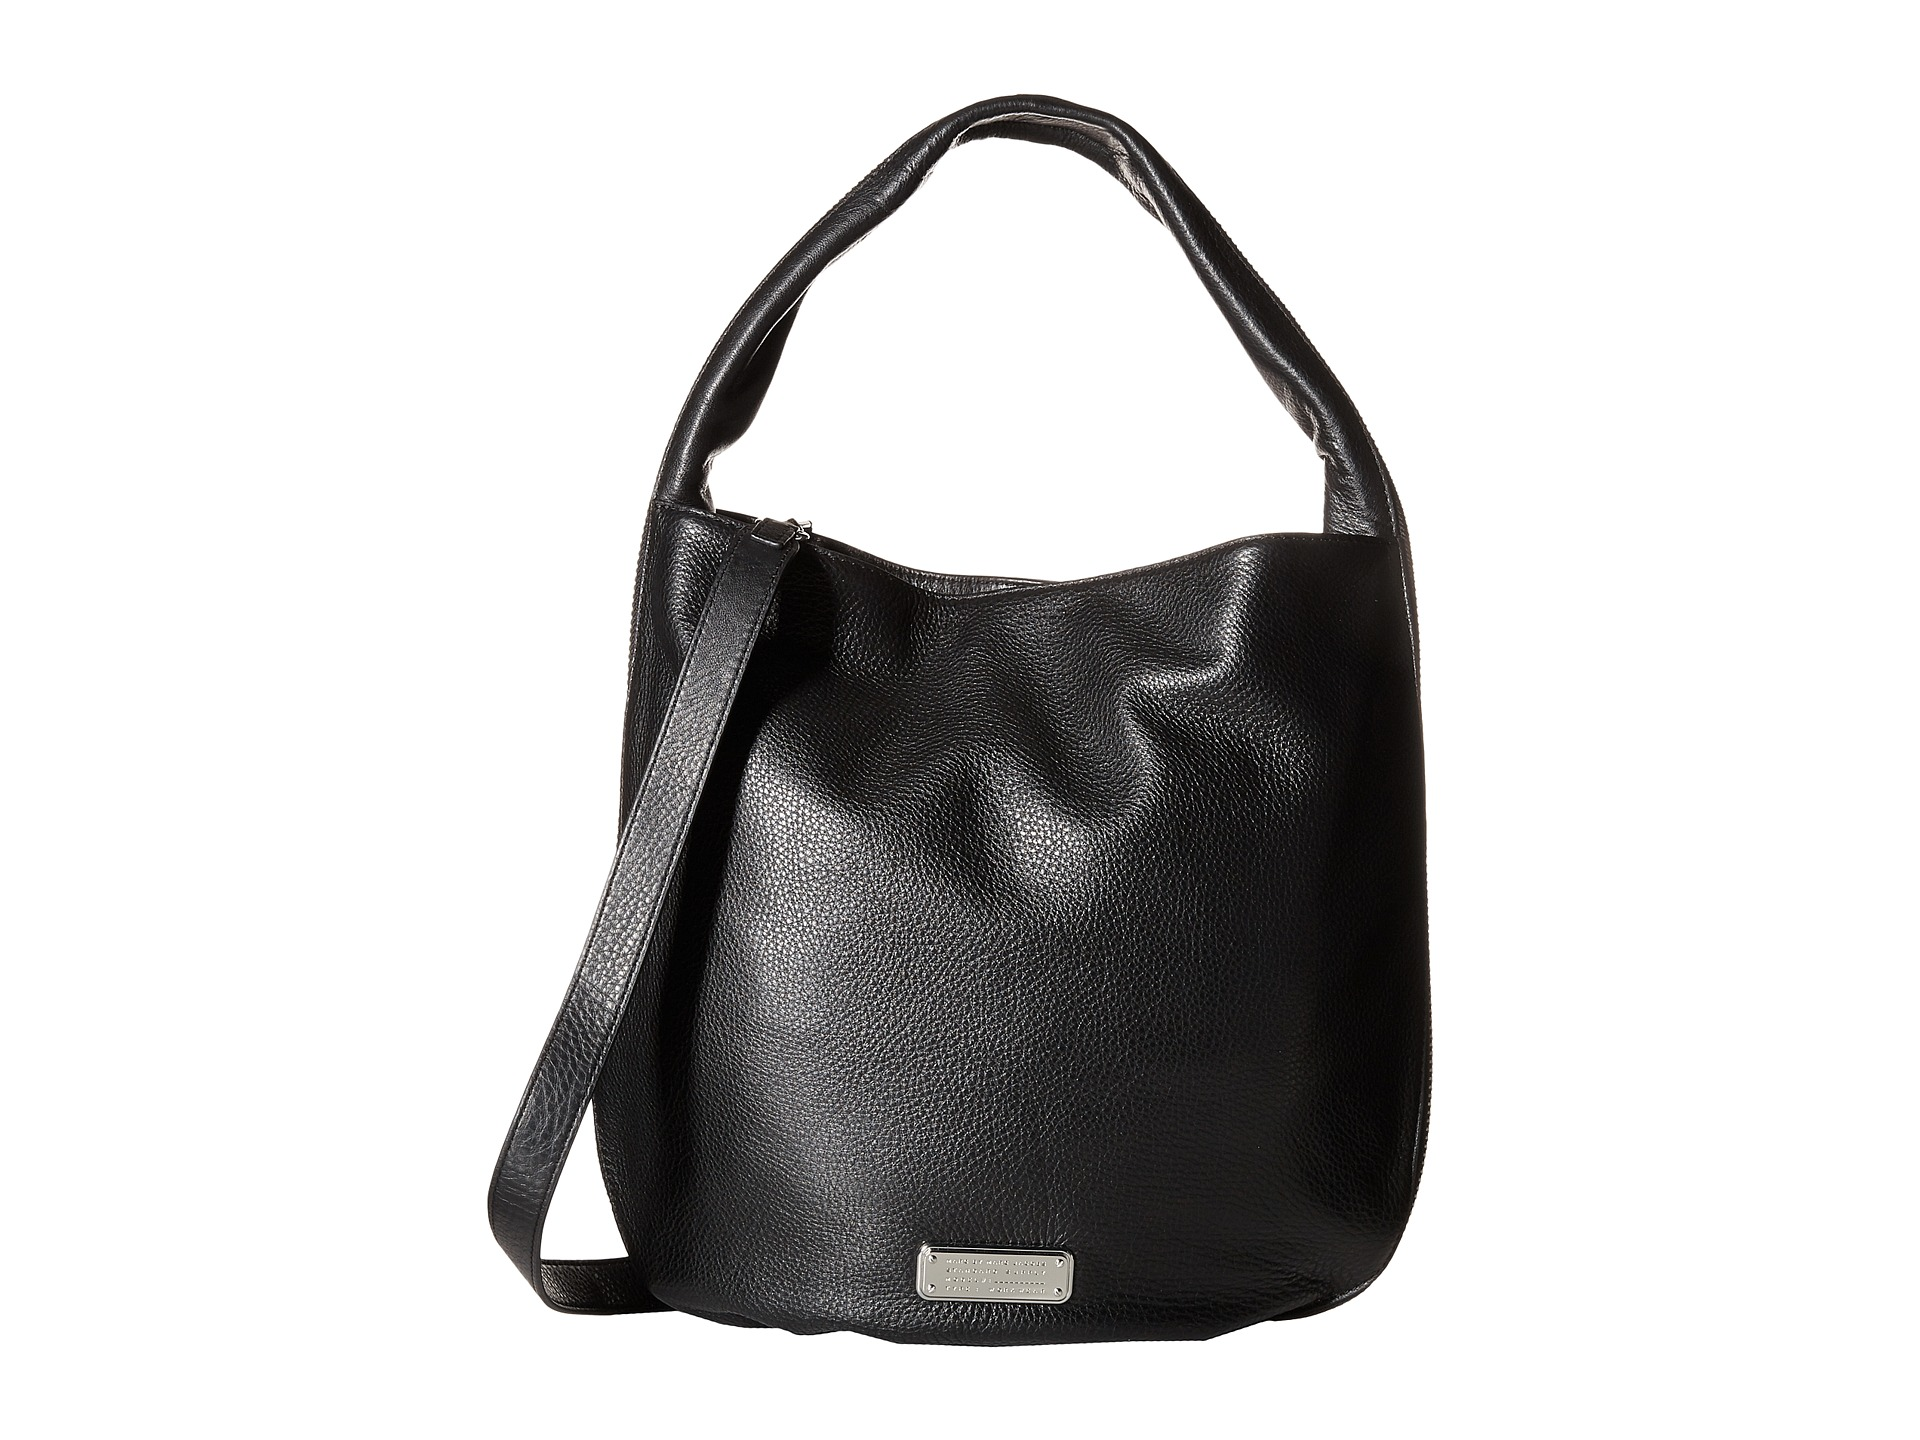 Marc Jacobs Hobo Laukku : Marc by jacobs q zippers hiller hobo